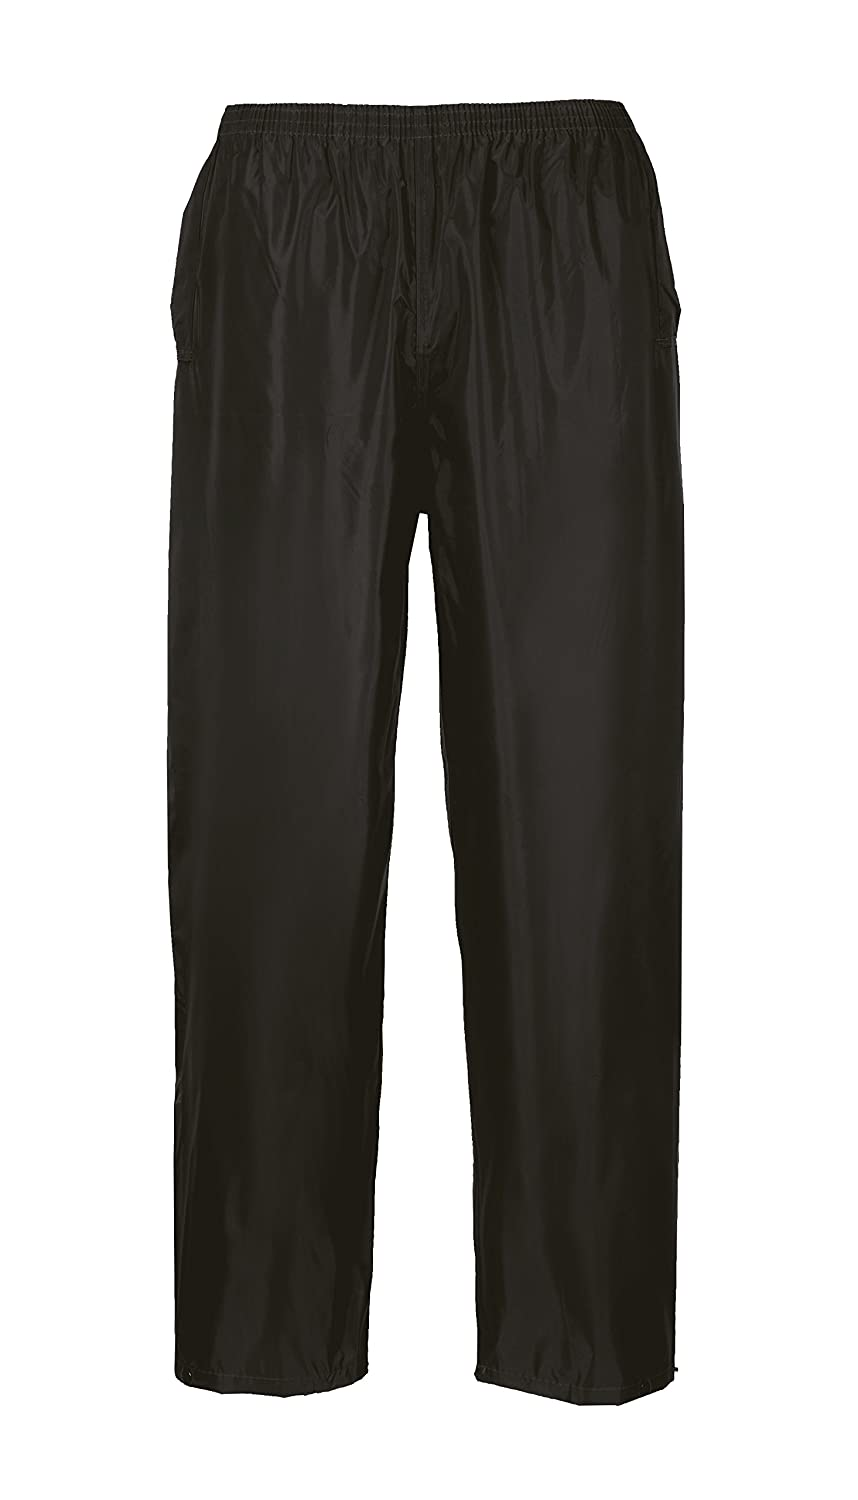 Portwest US441BKRXL Regular Fit Classic Adult Rain Pants, X-Large, Black